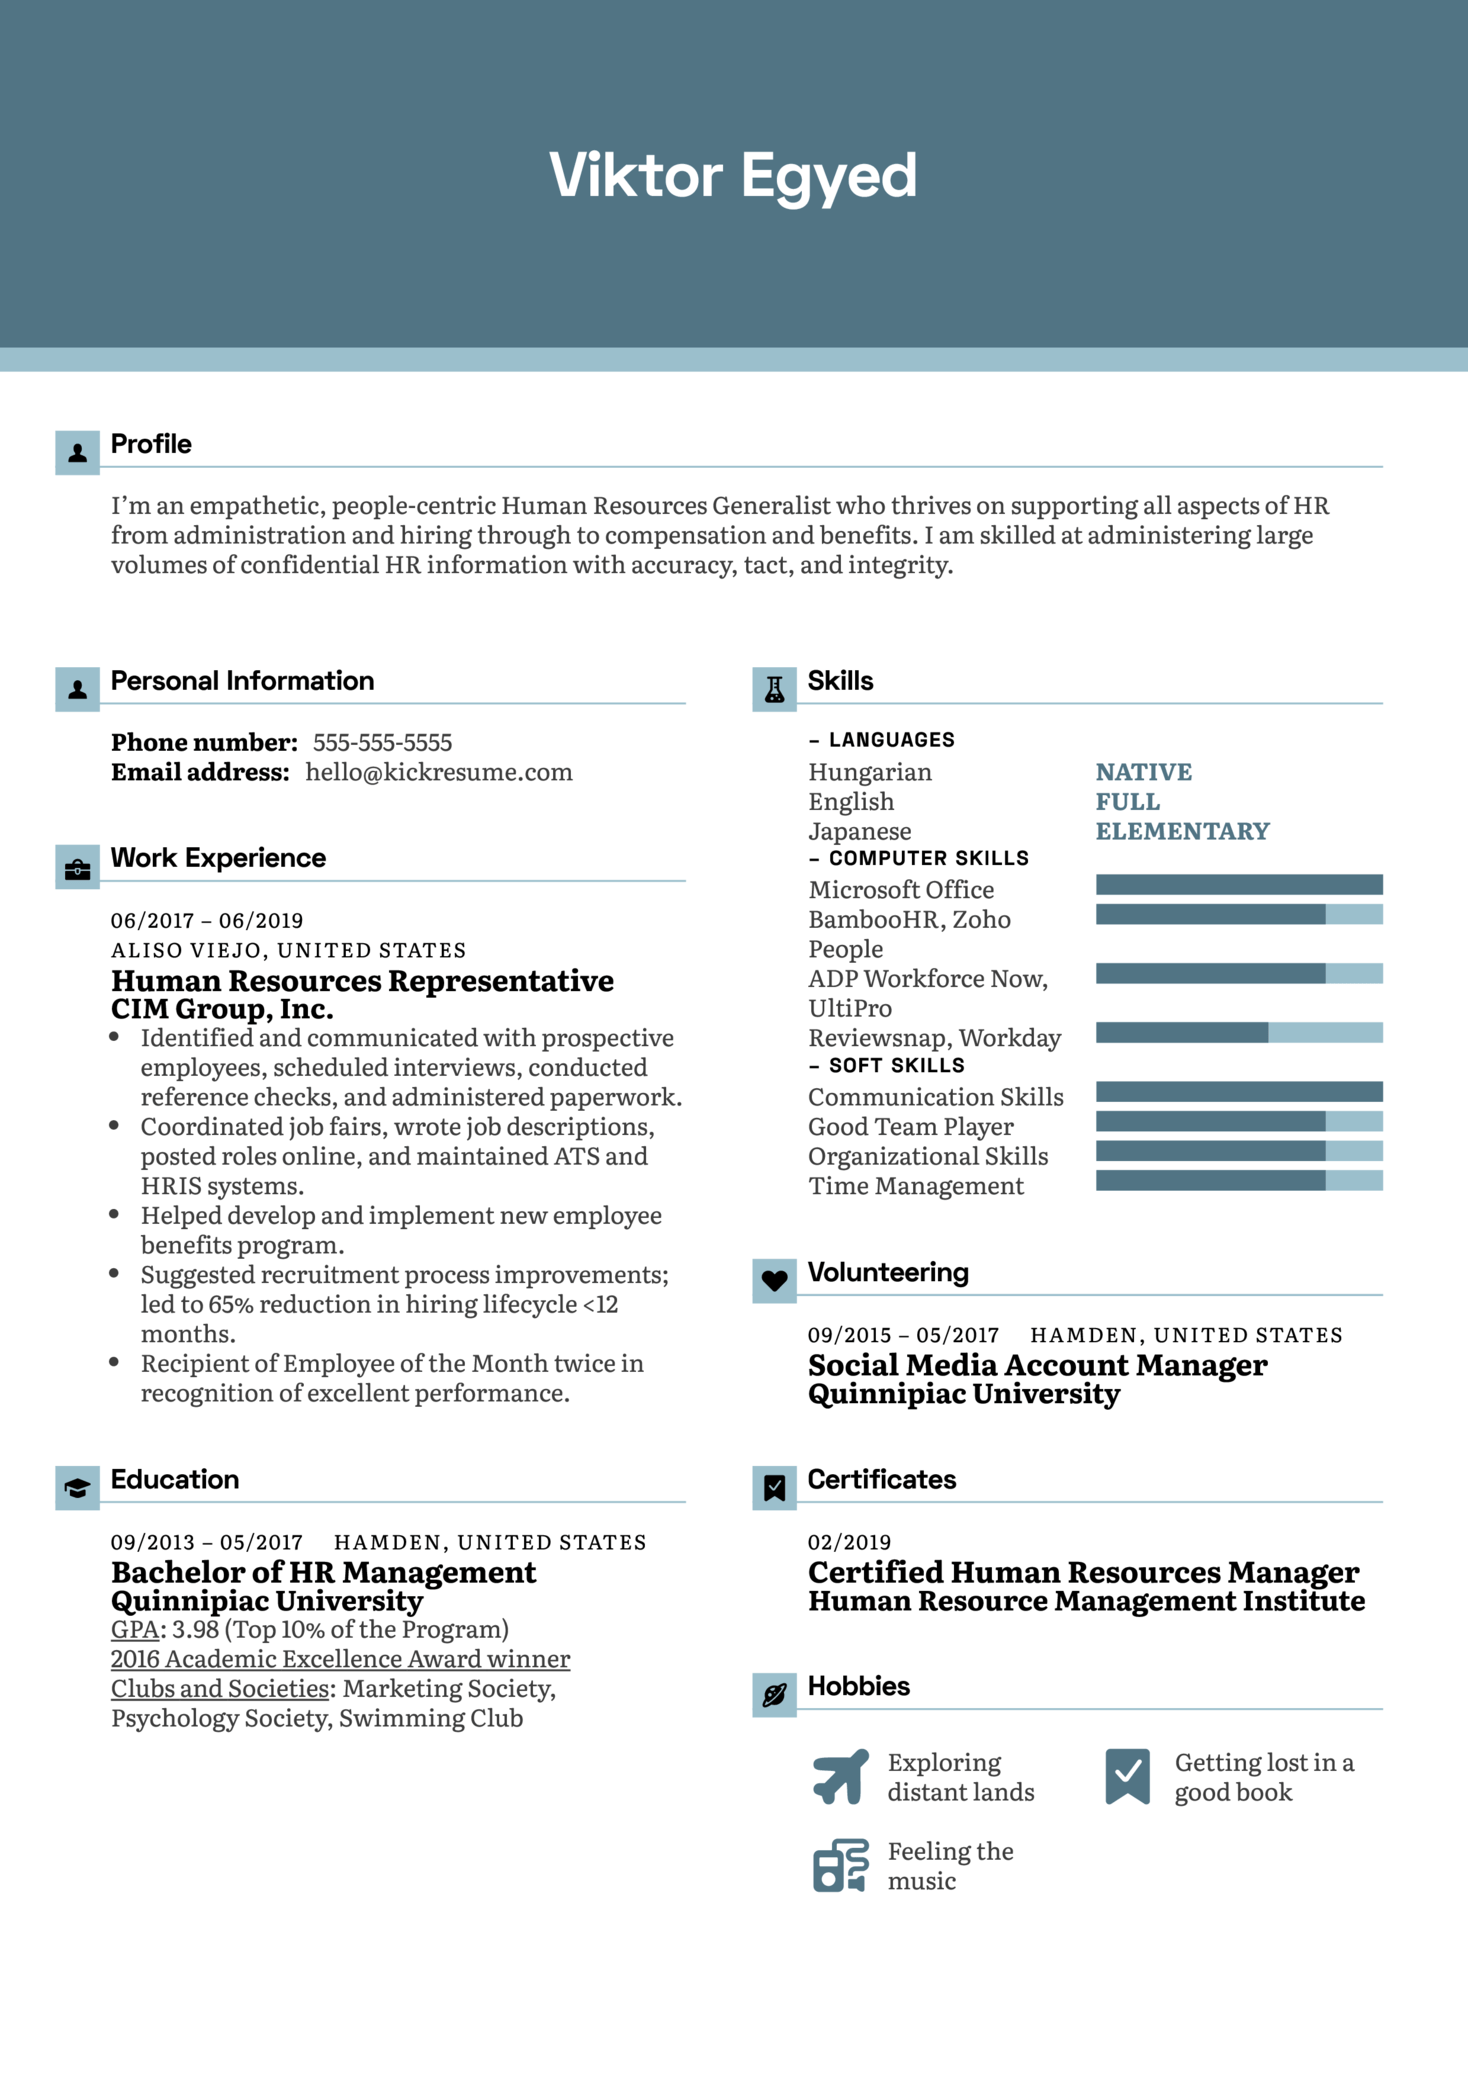 Human Resources Representative Resume Example (parte 1)